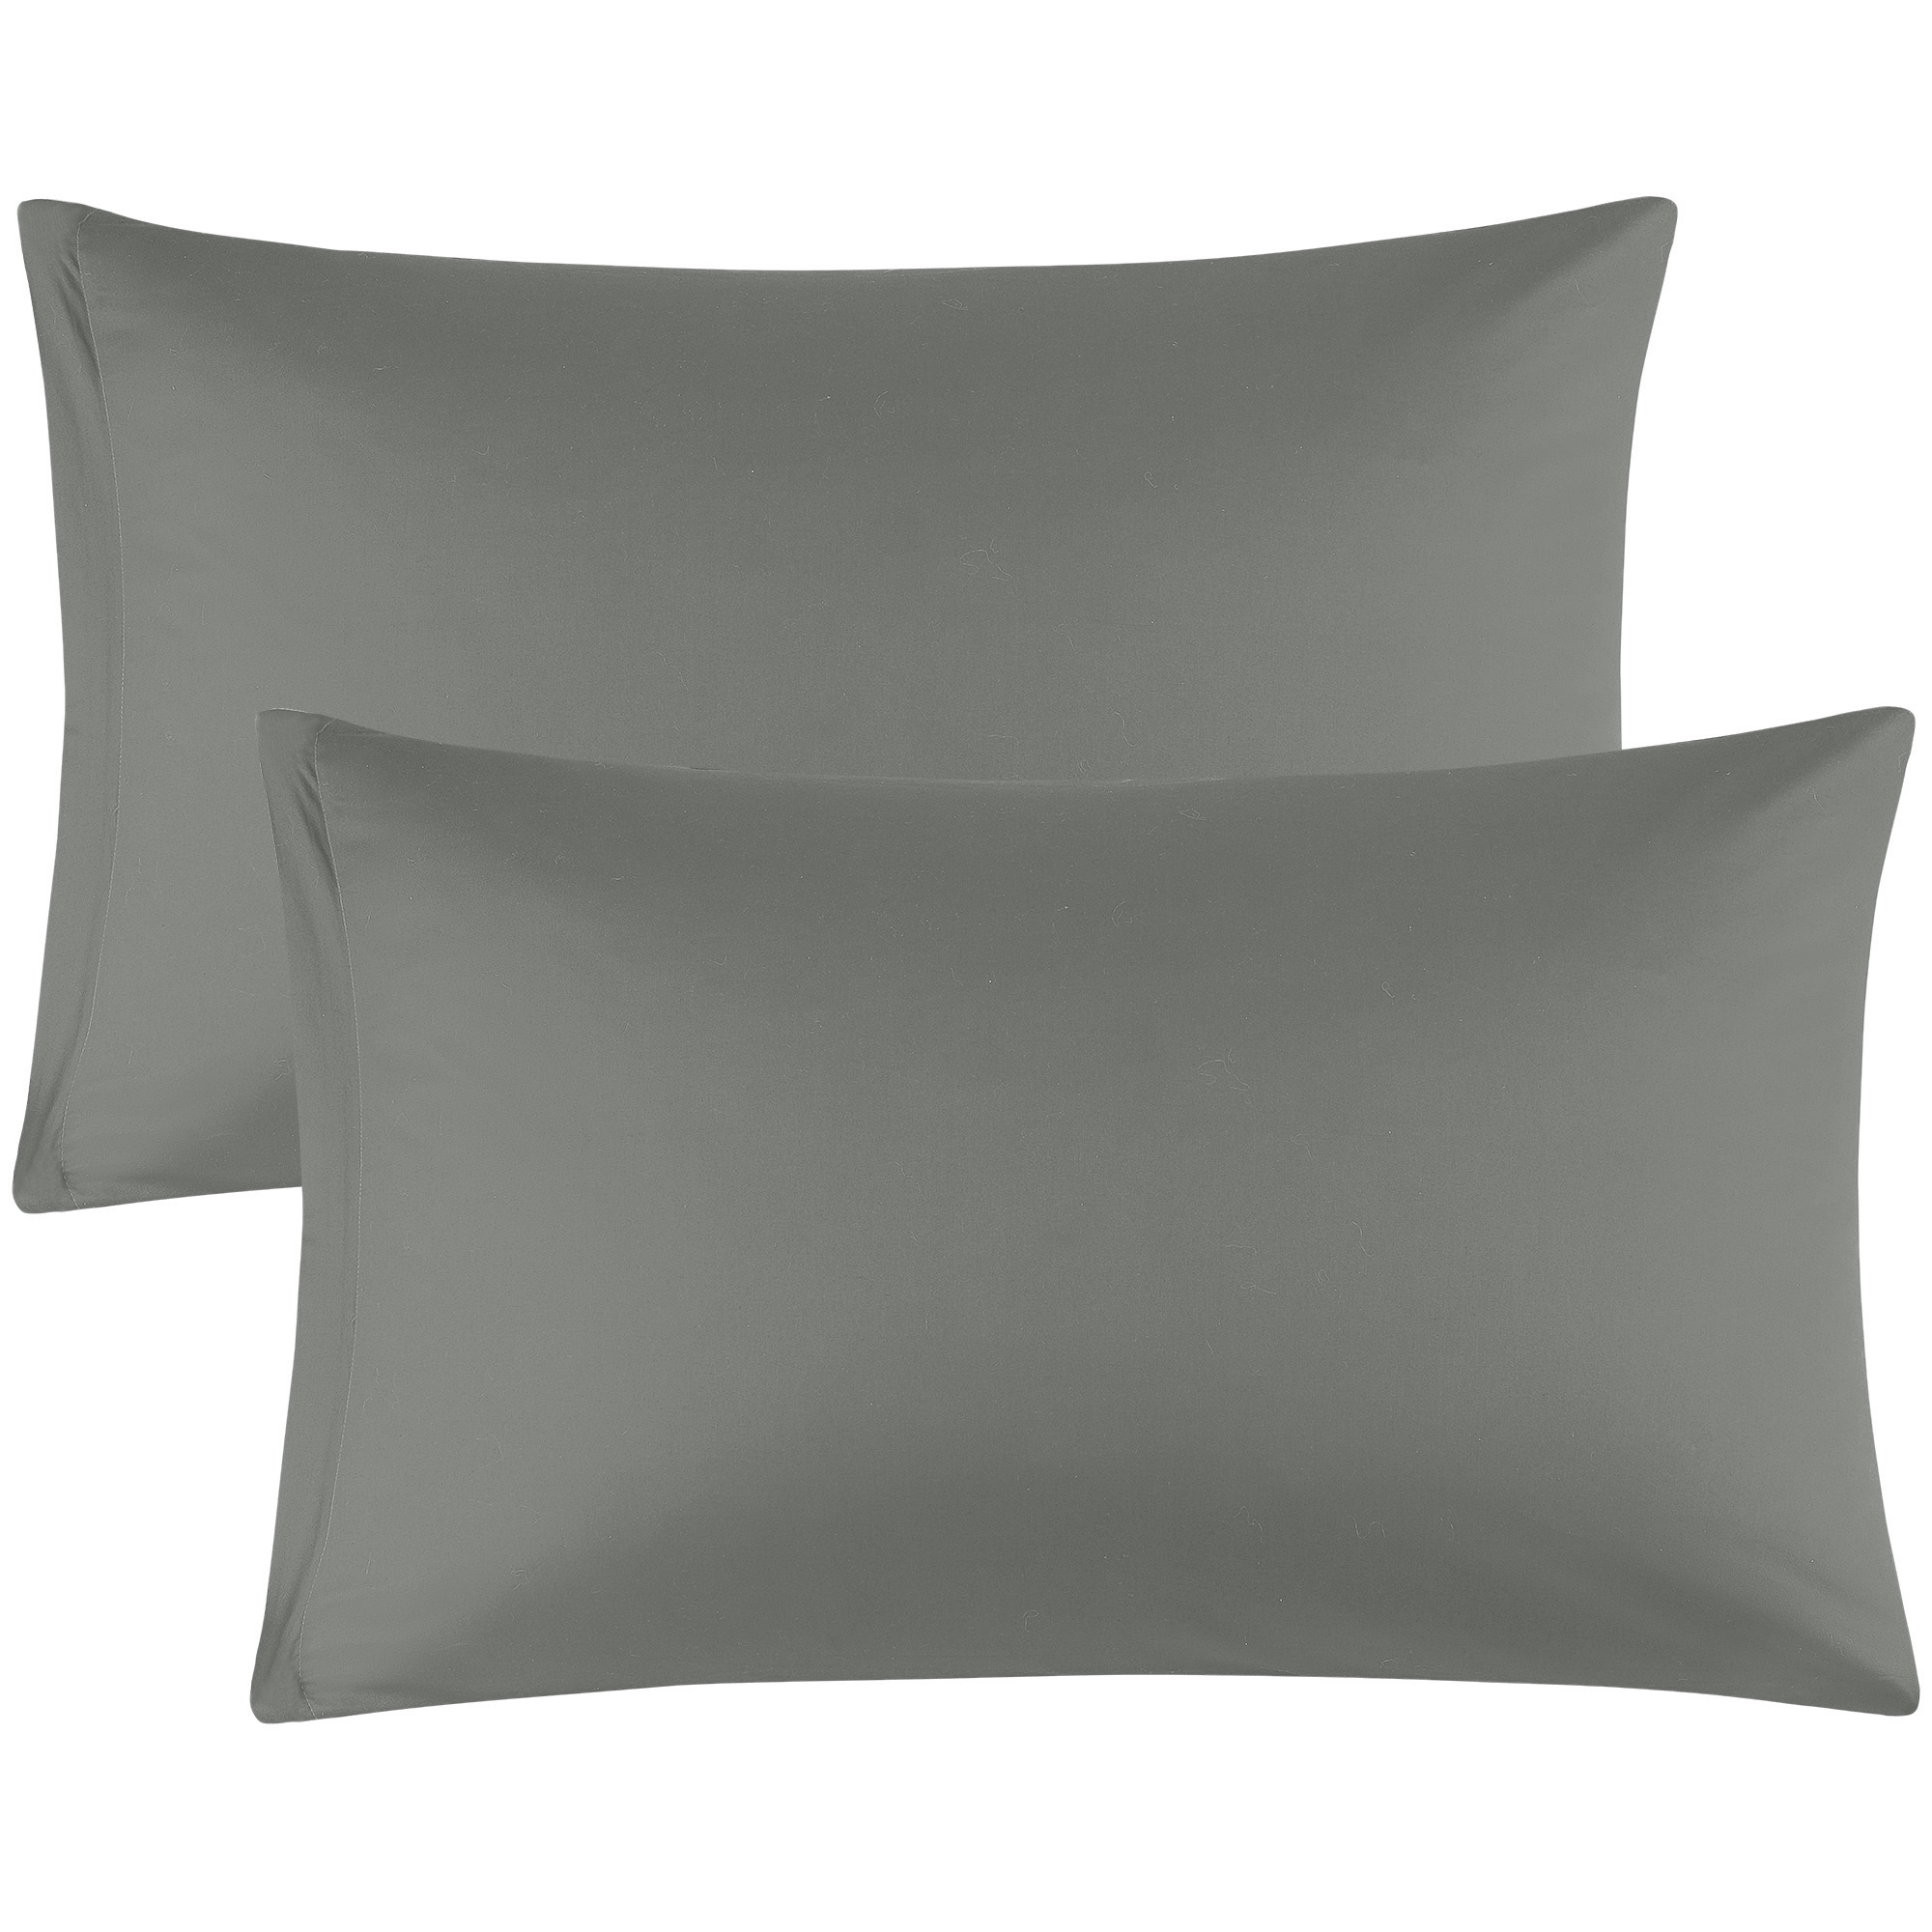 Zippered Pillowcases Covers Egyptian Cotton 2-Pack (20 x 26 Inch, Dark Gray)